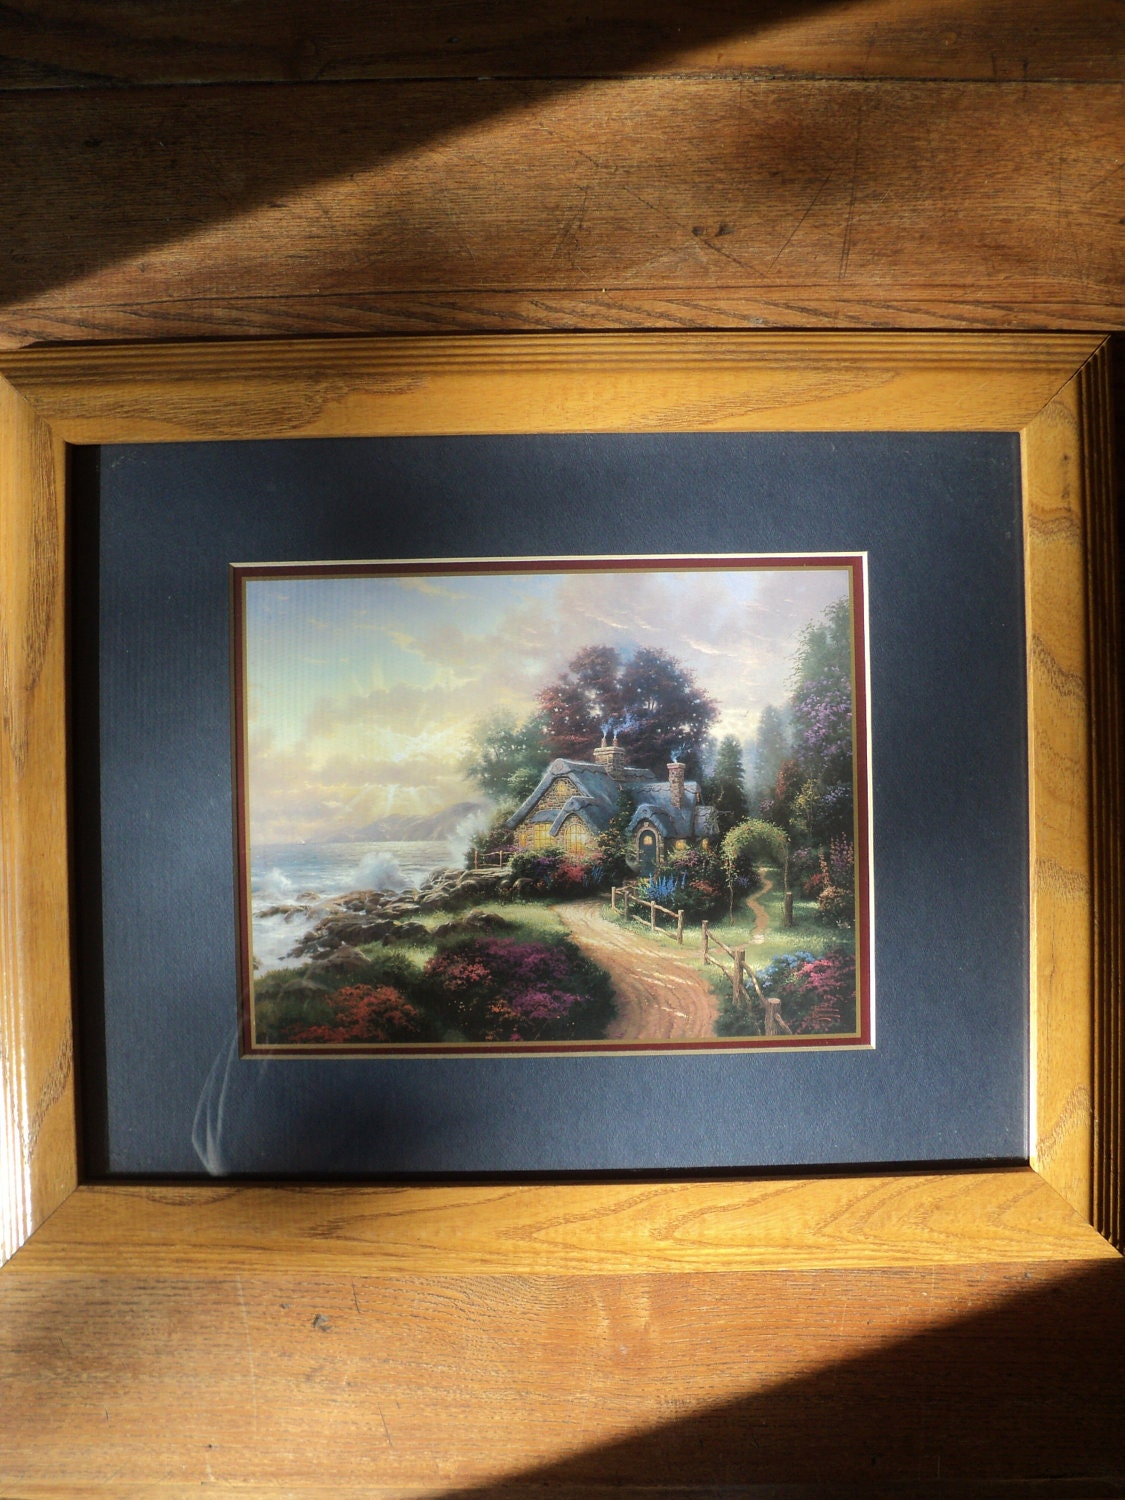 Vintage Thomas Kinkade Print Of A New Day Dawning With